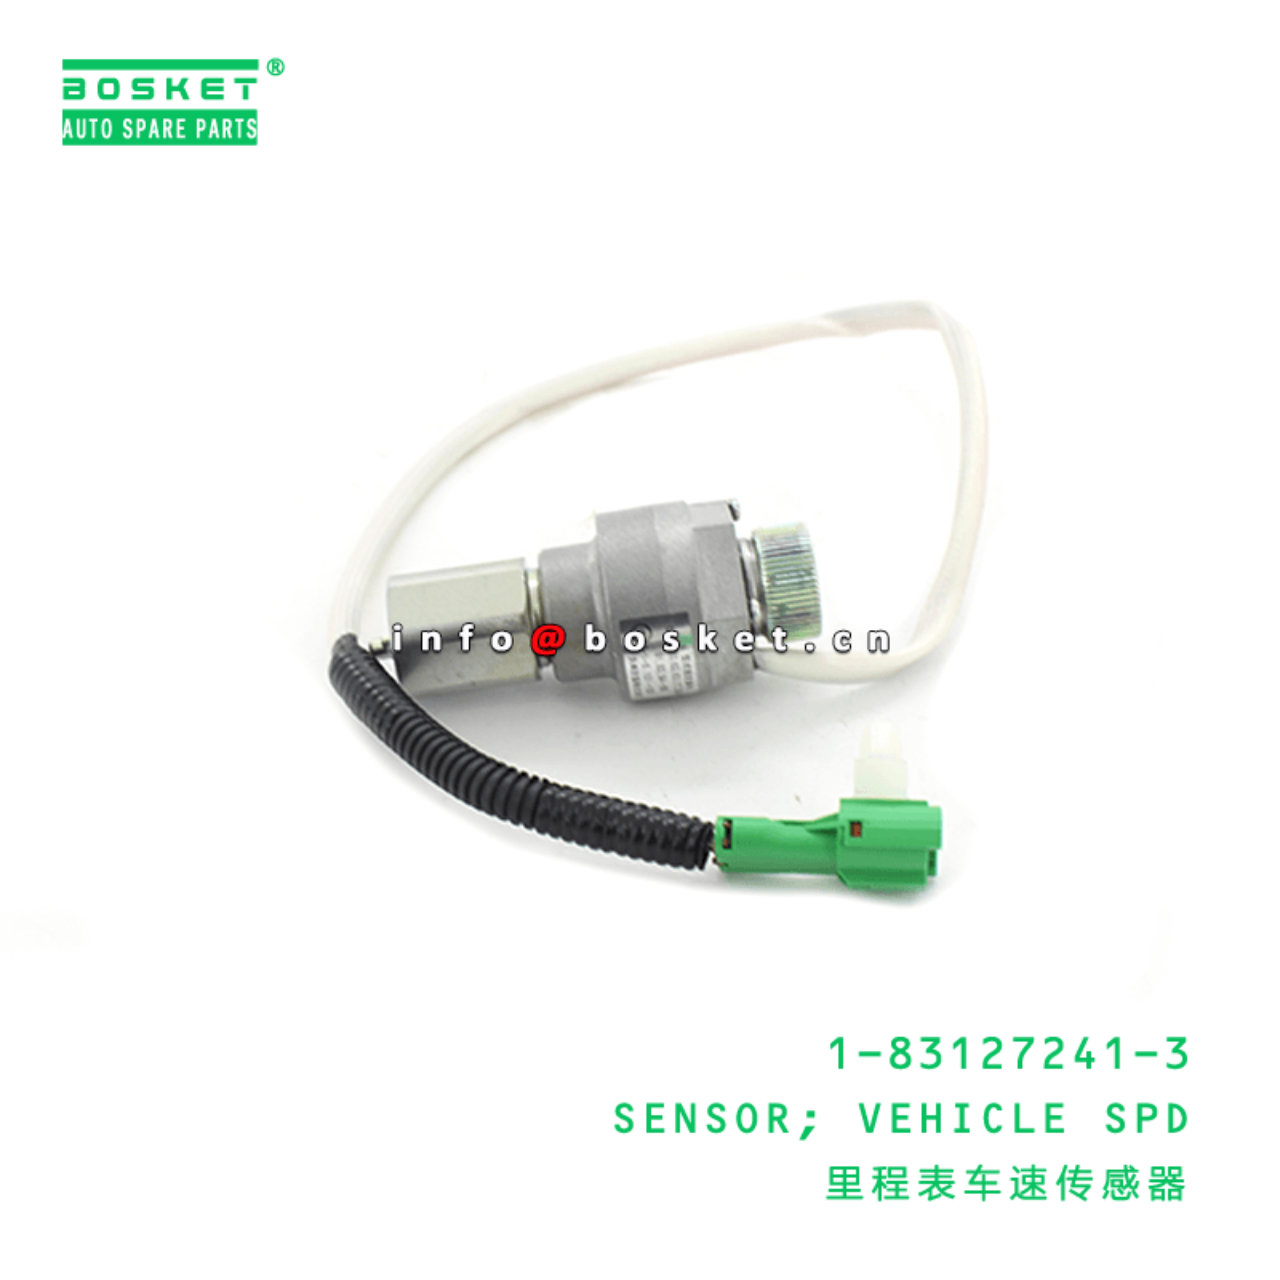 1-83127241-3 Vehicle Speed Sensor 1831272413 Suitable for ISUZU LT133 6HH1